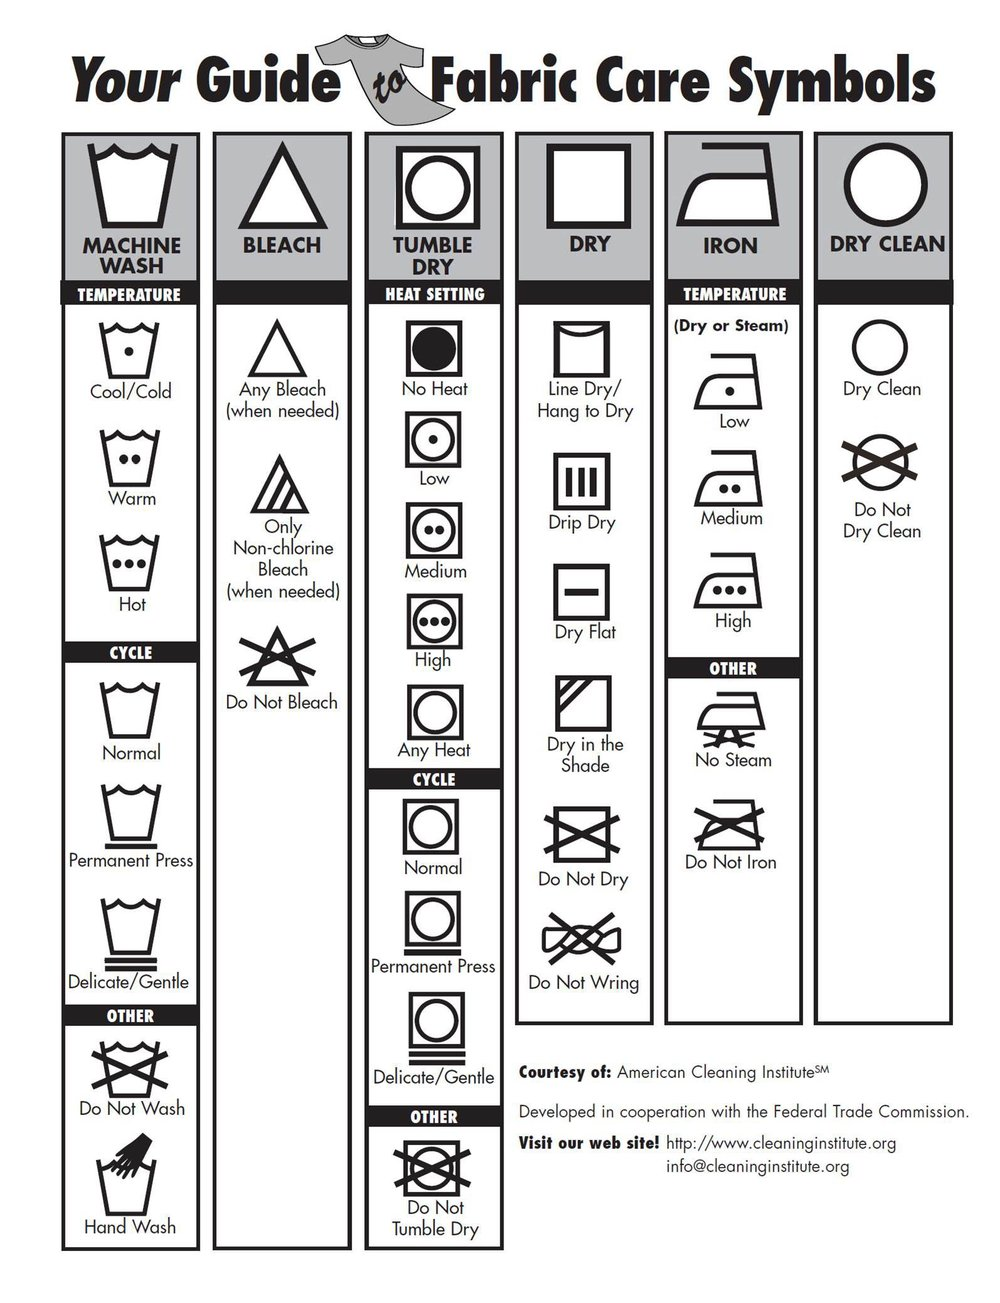 cooncord-Fabric_Care_Symbols2.jpg